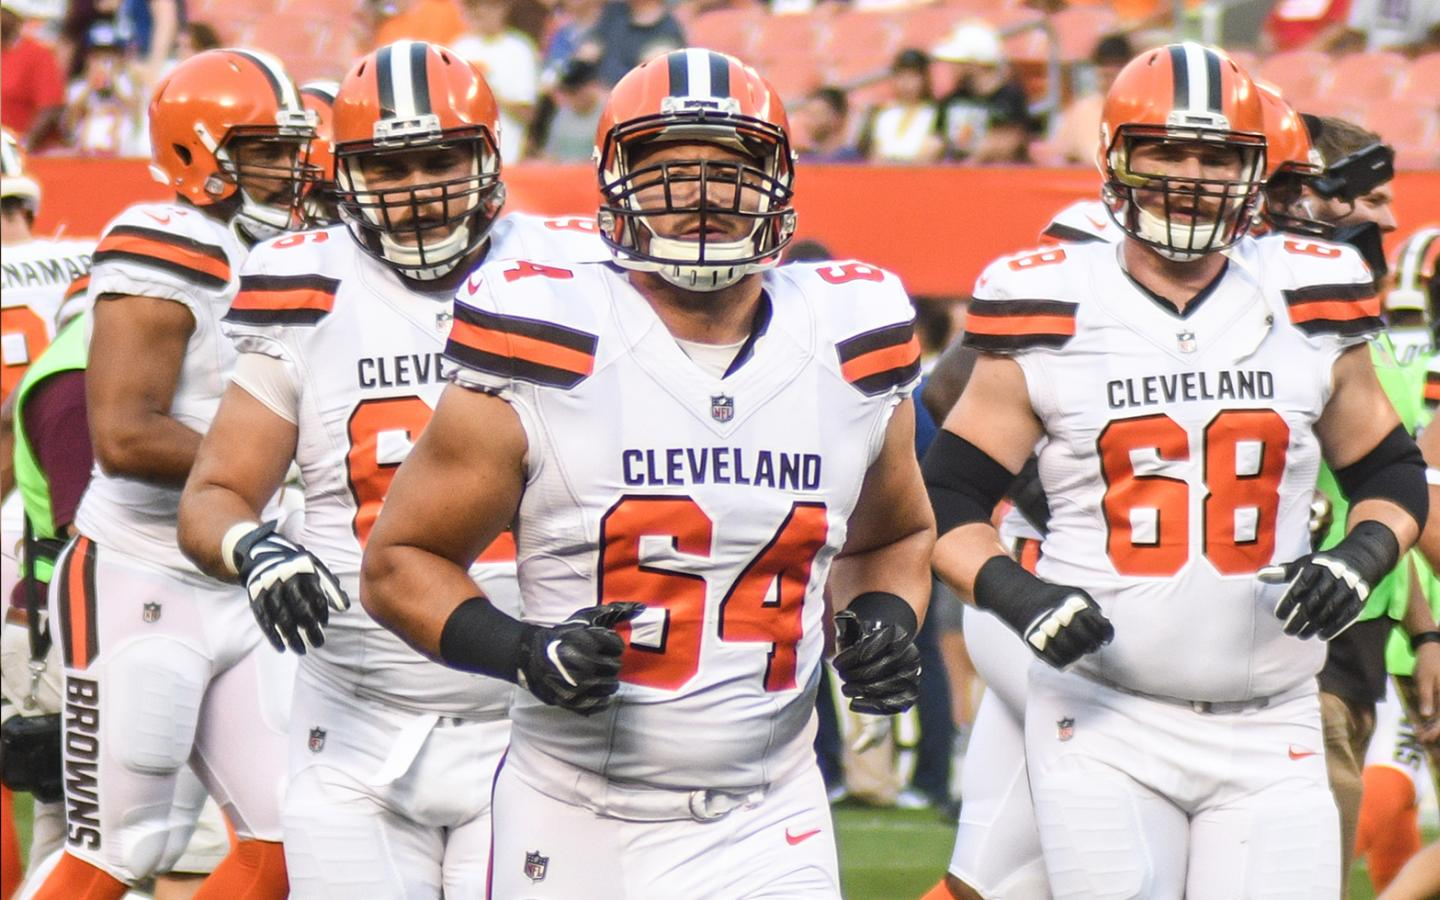 JC Tretter (#64) leads the Cleveland Browns' offensive line onto the field (Erik Drost).